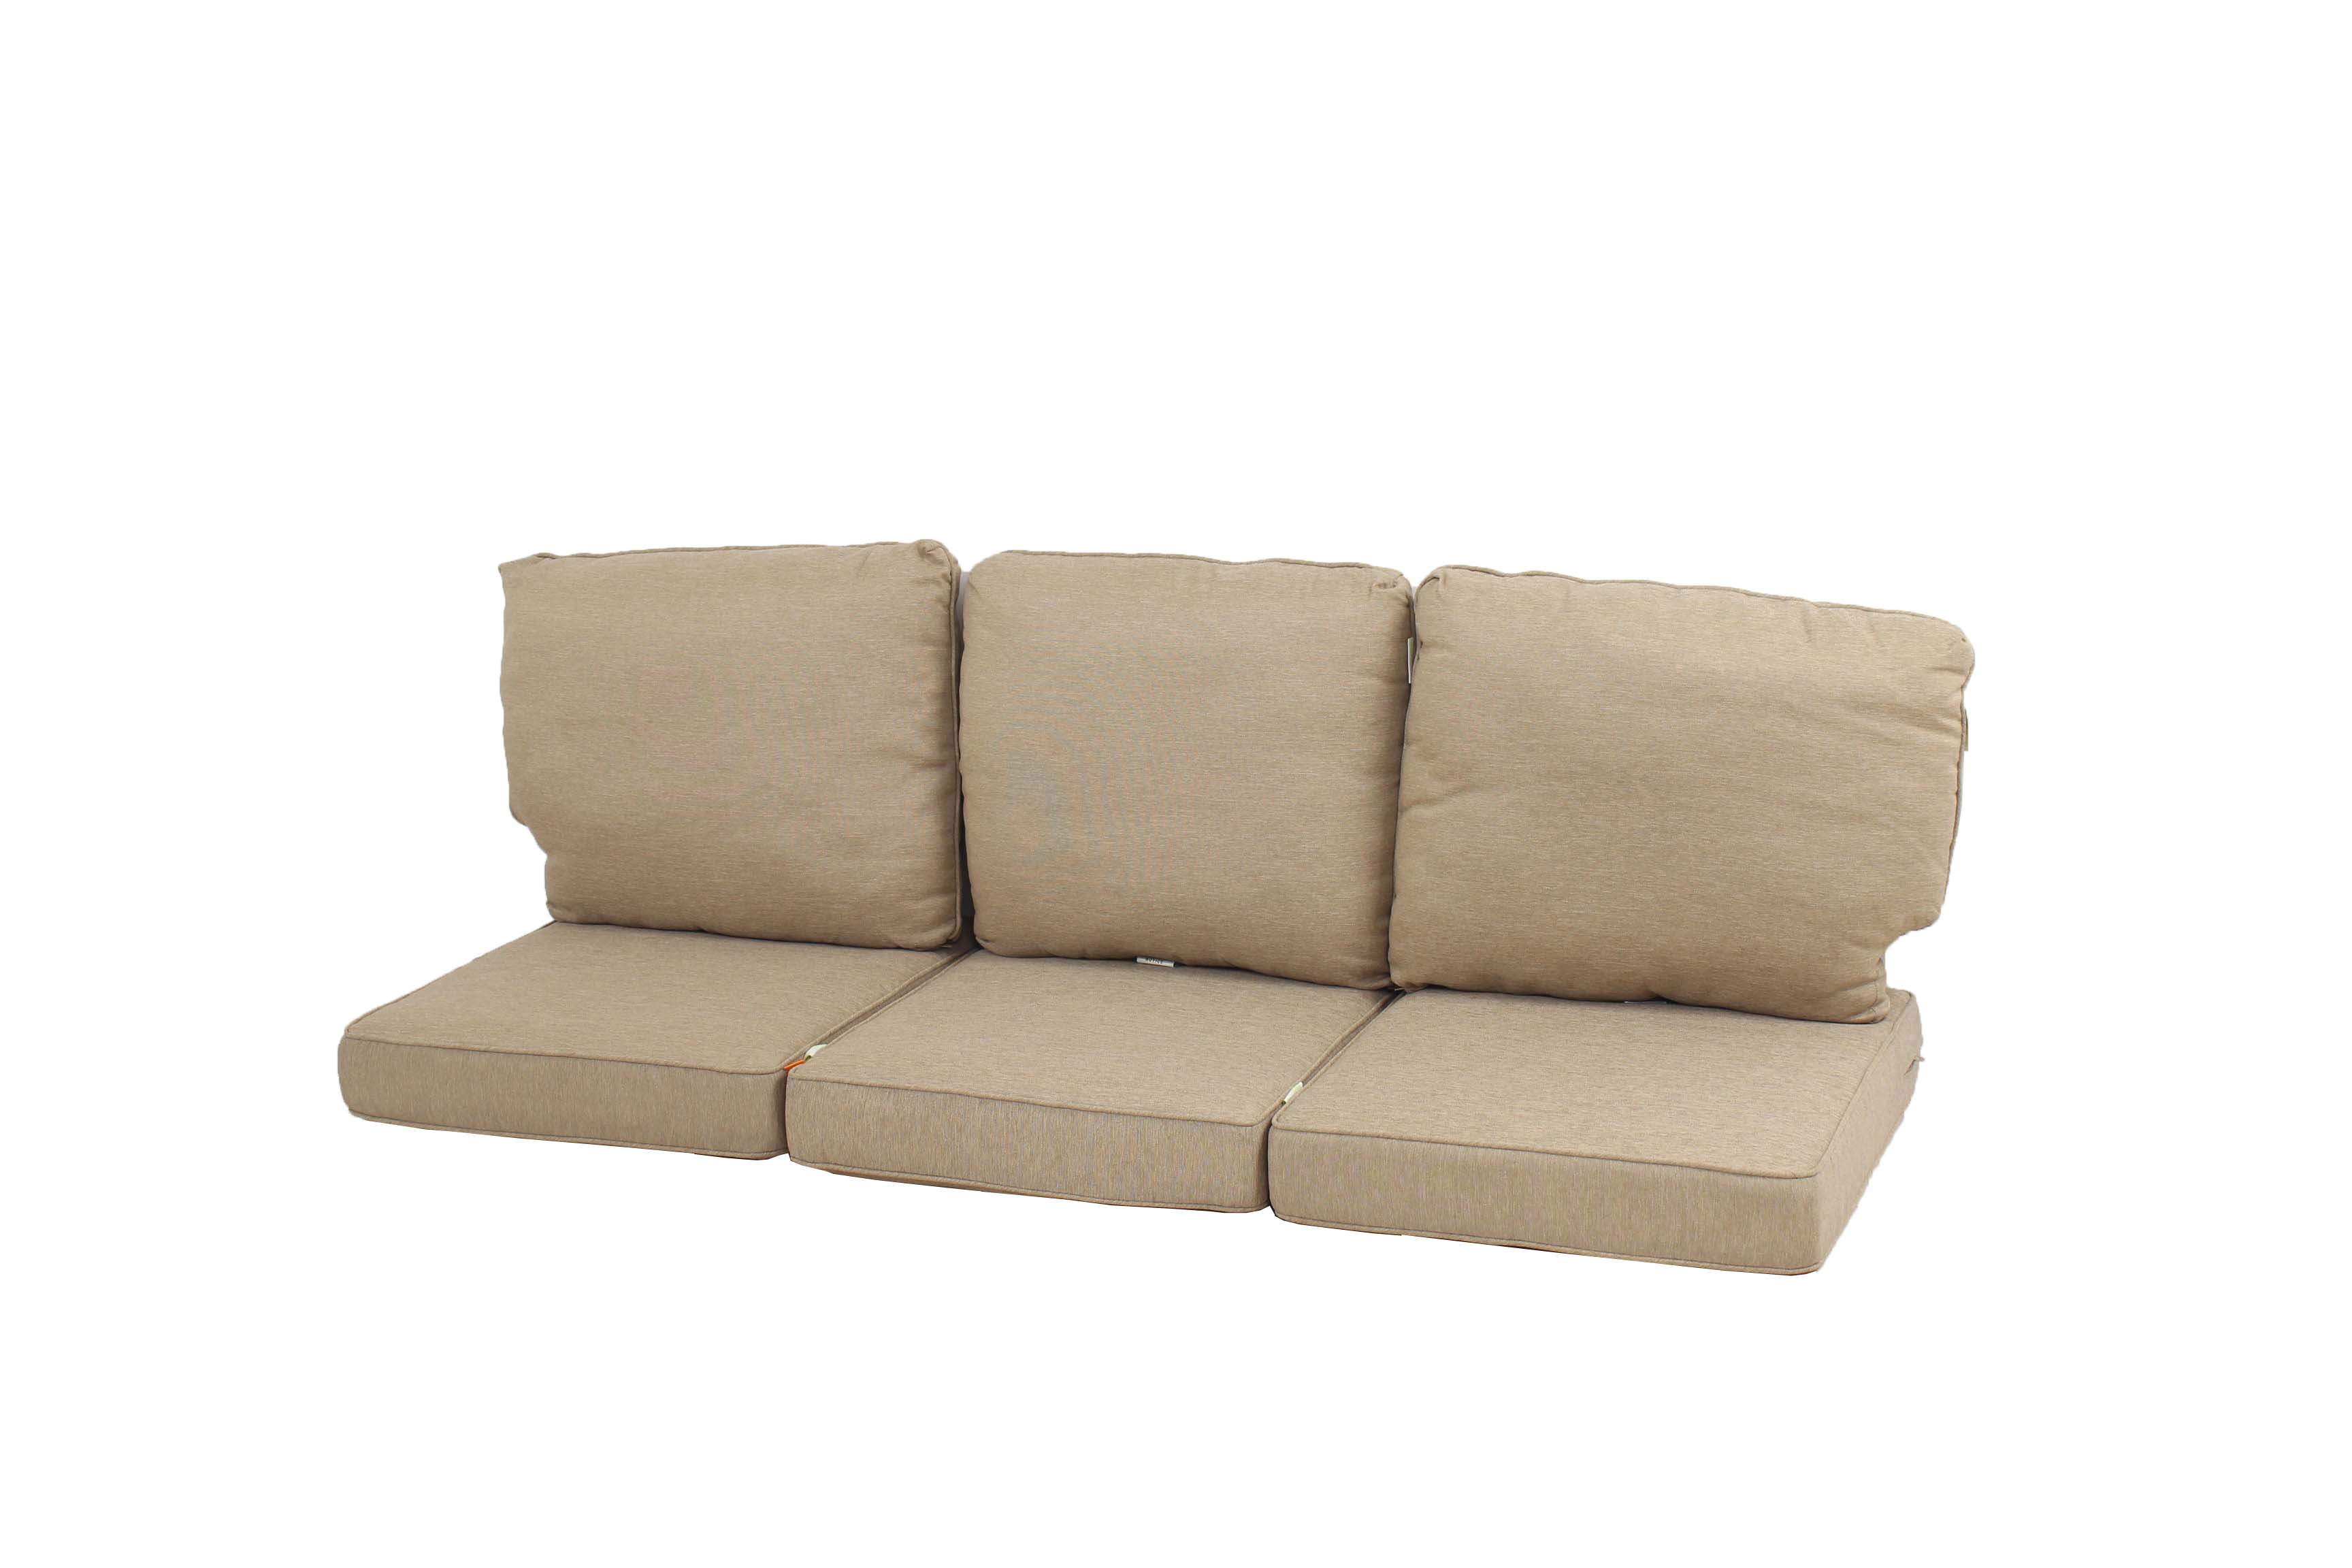 Big Cushion Sofa Large Sofa Cushions Cheap Brokeasshome